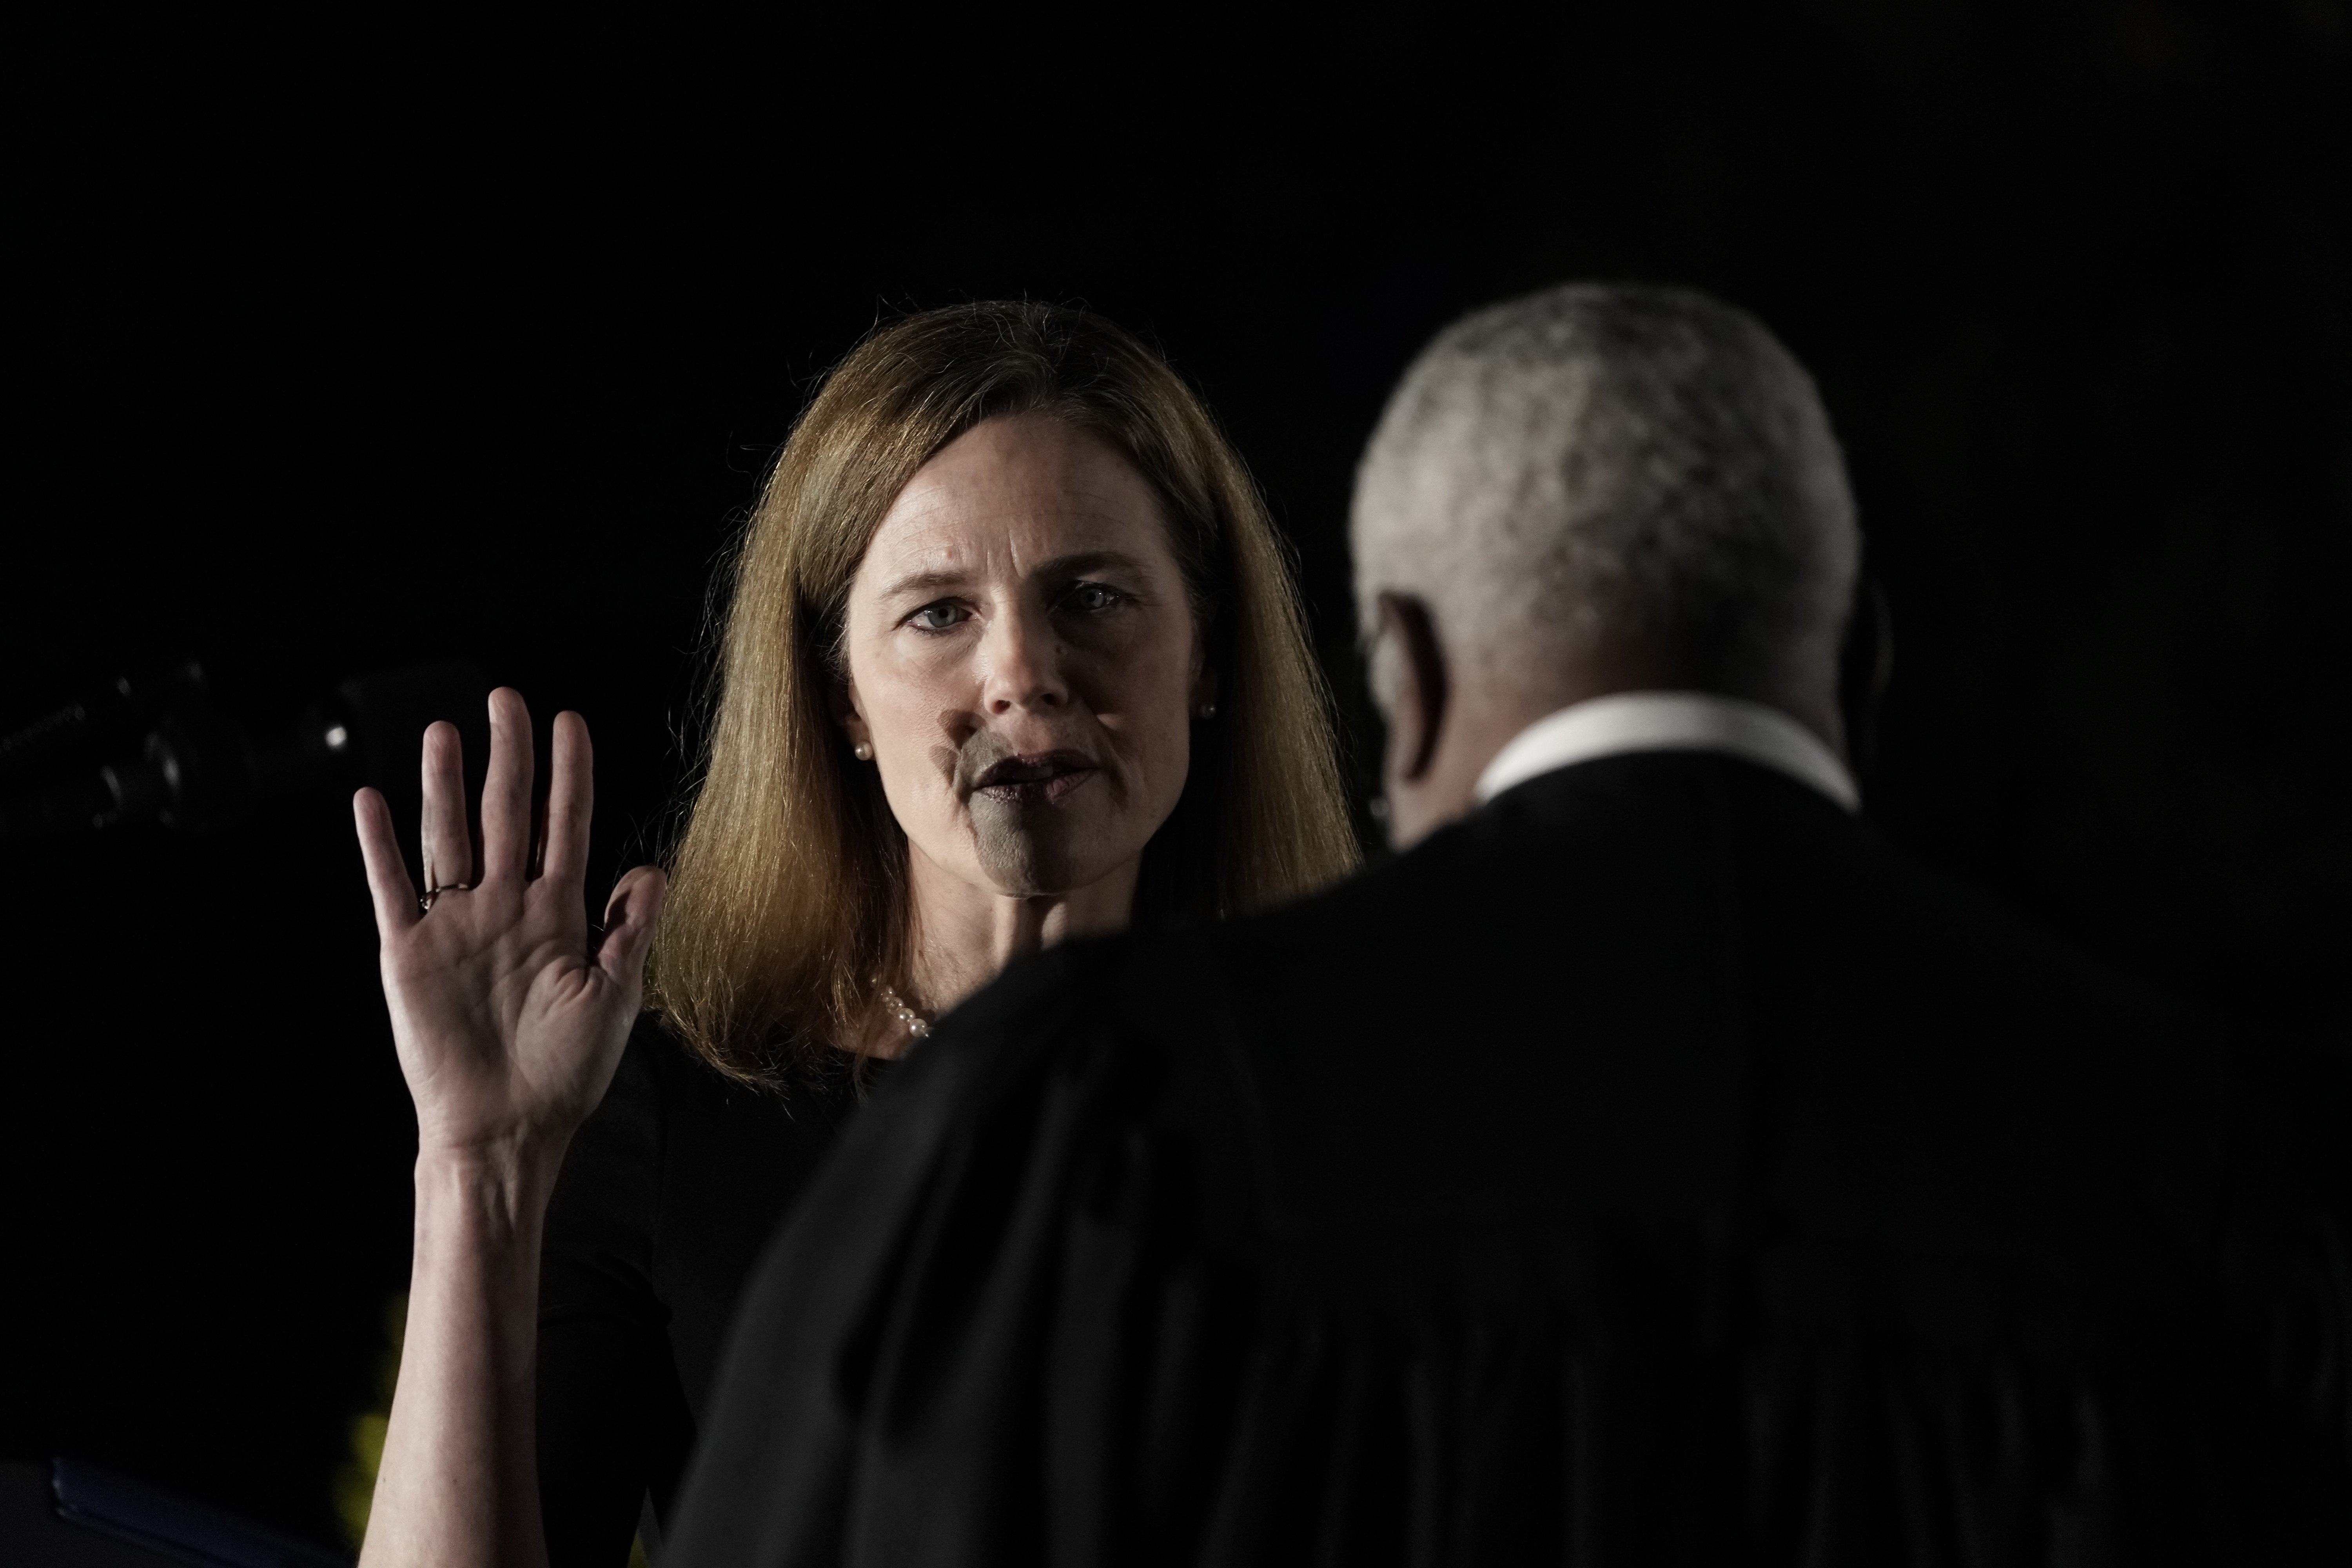 Supreme Court Associate Justice Amy Coney Barrett holding up her hand to take an oath.